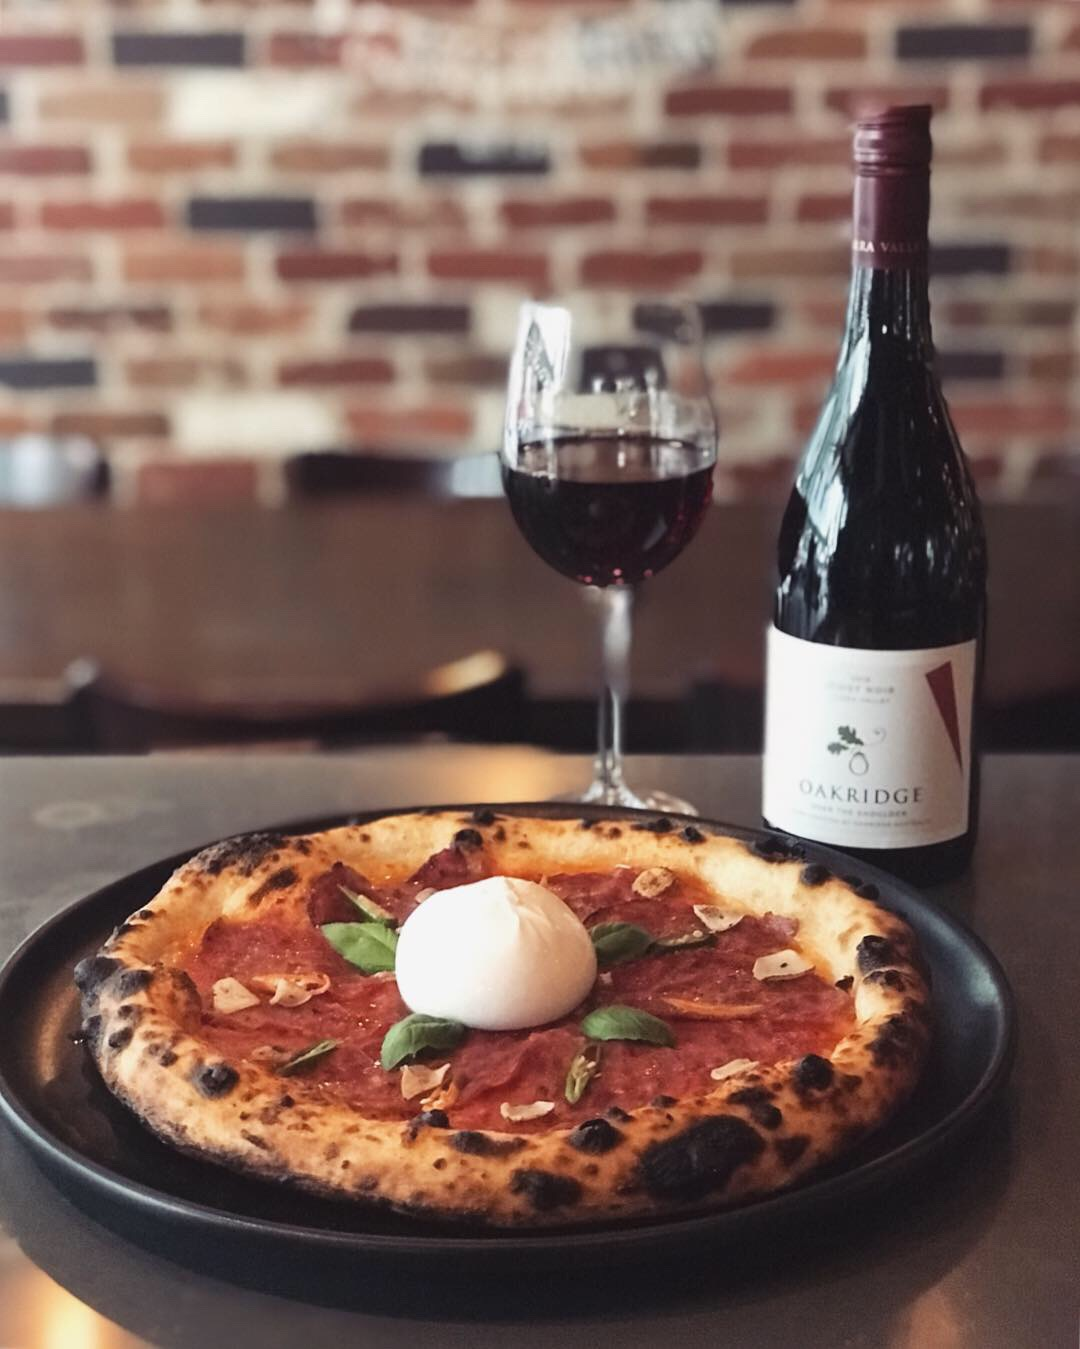 20-26 March - Nothing beats this heart-warming, comforting spicy pizza on a wet Autumn day.Burrata, salame Calabrese, San Marzano tomato, mozzarella, basil.Matched by a playful glass of Oakridge Pinot Noir (Yarra Valley, VIC).